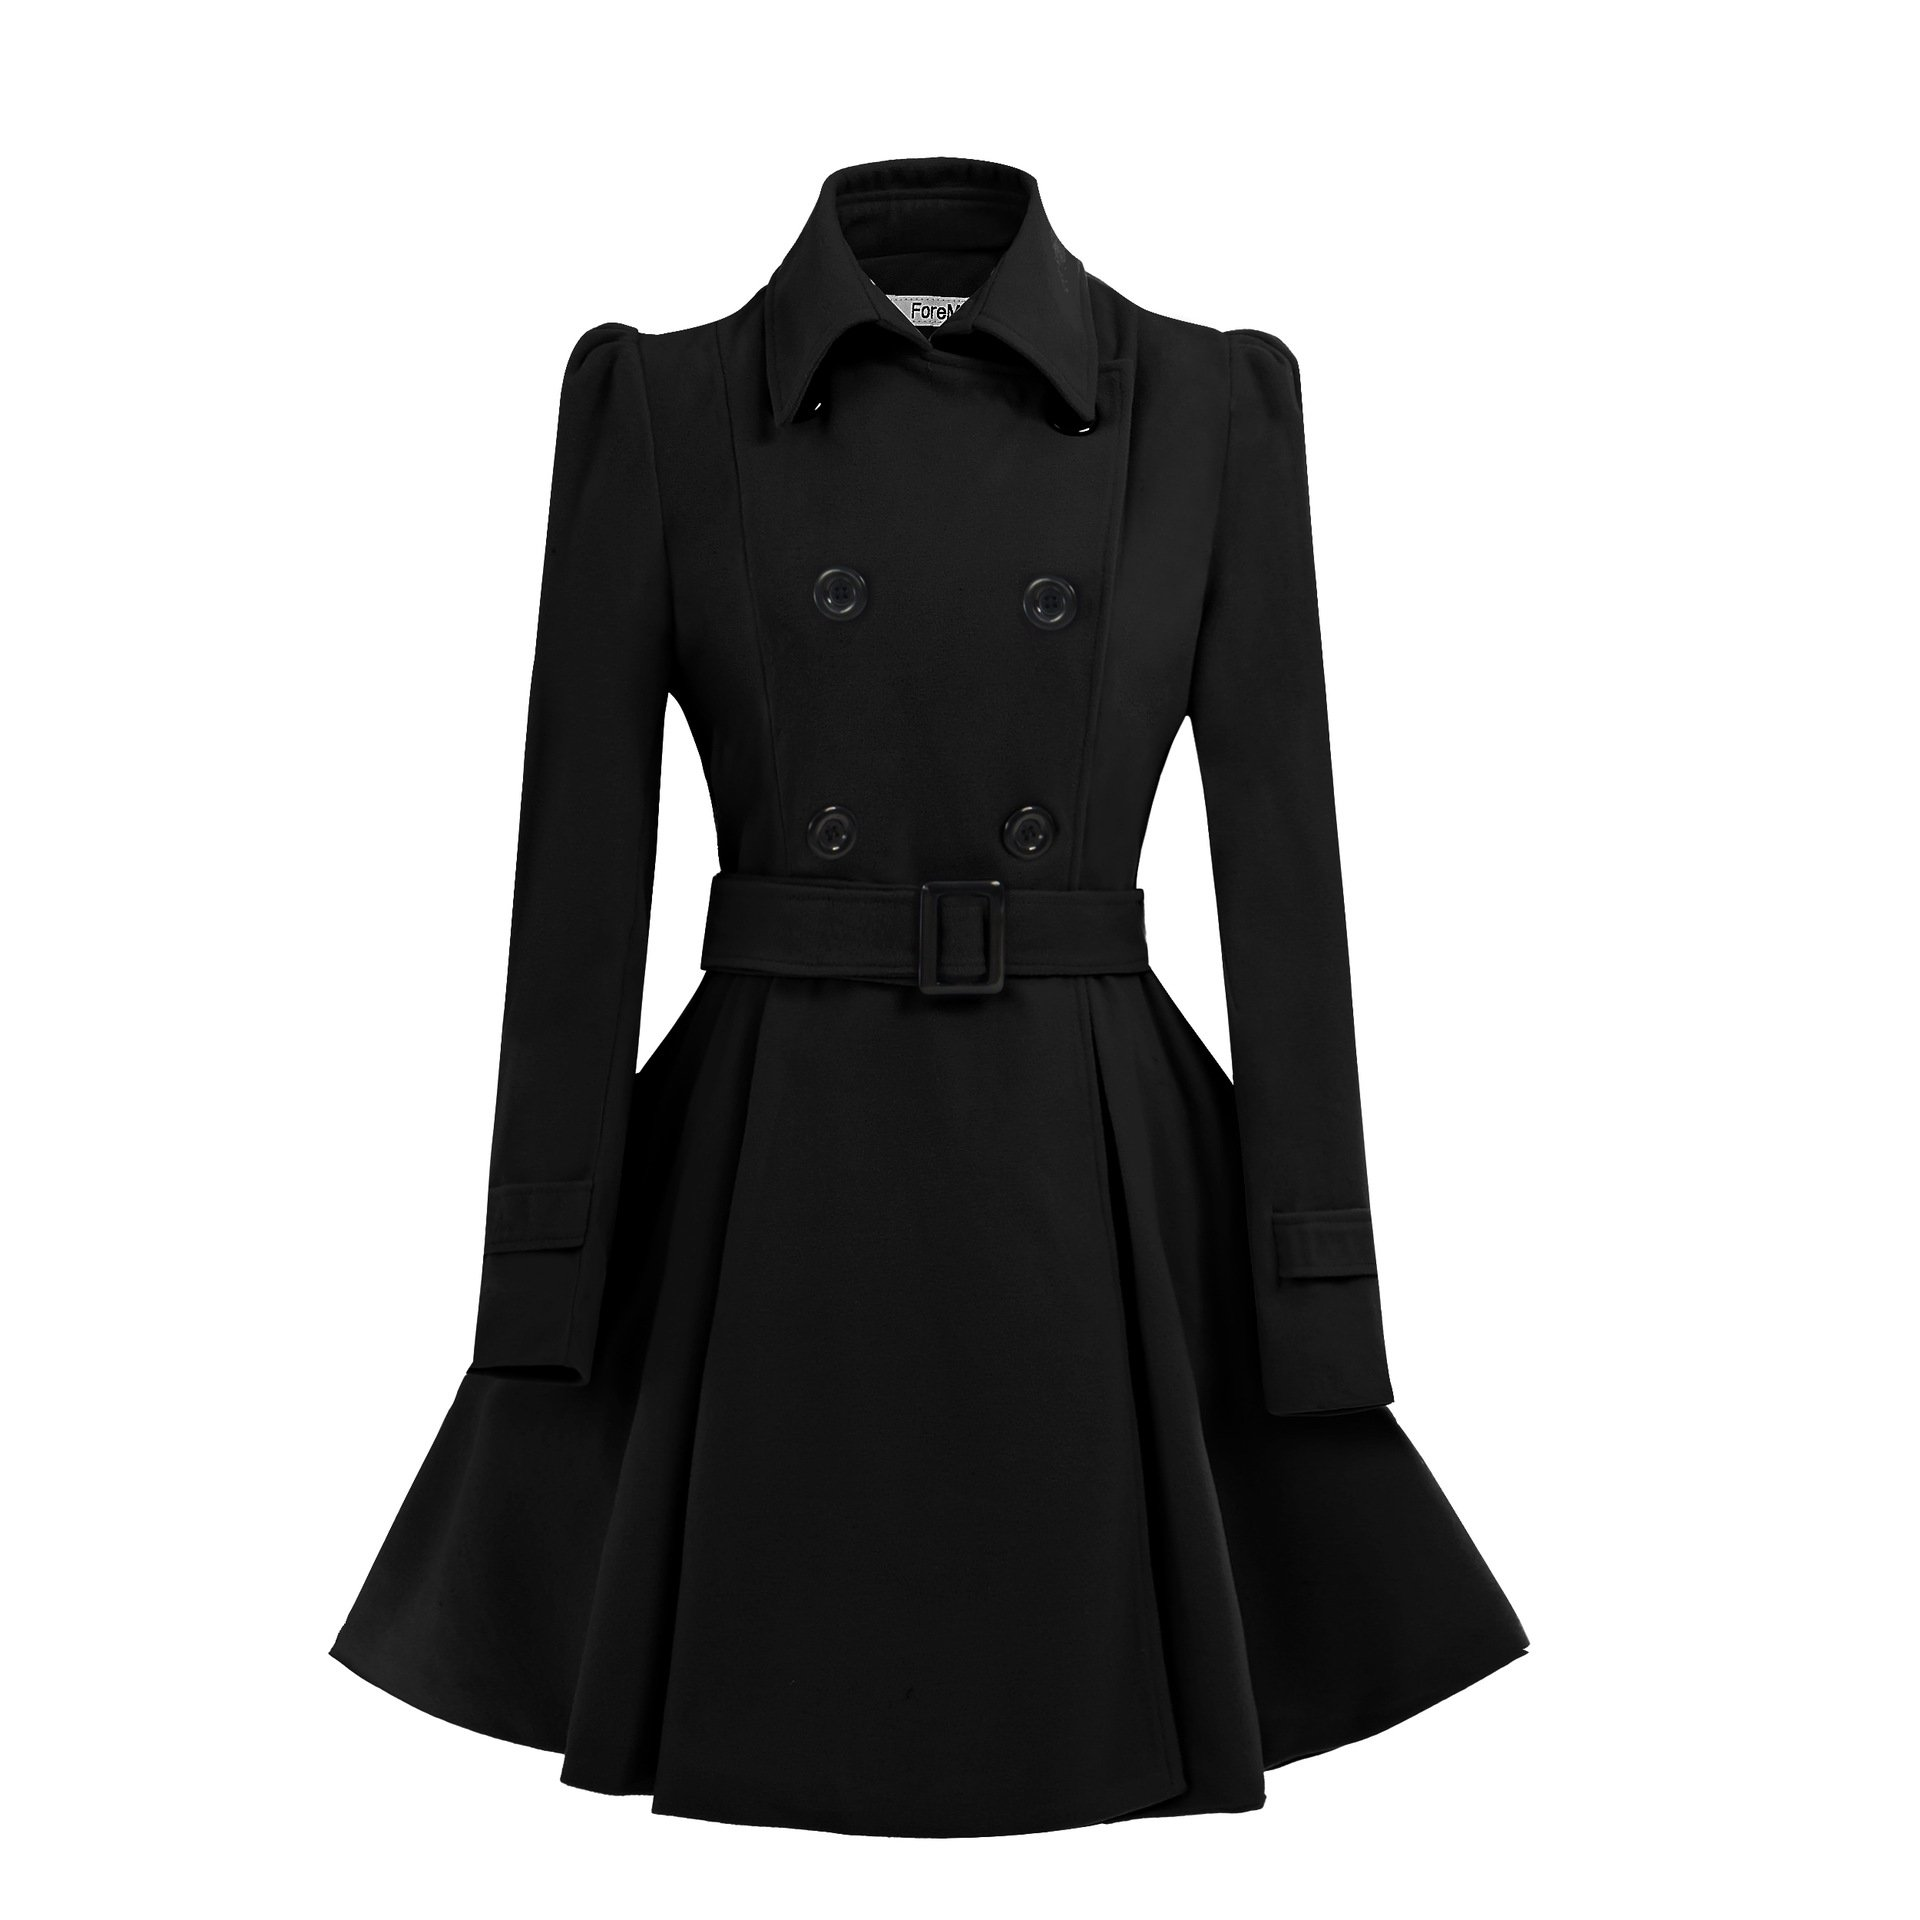 ForeMode Women Double Breasted Trench Coat with Belt Buckle Winter Mid-Long Long Sleeve Casual Dresses Style Outwear(Black 2XL)